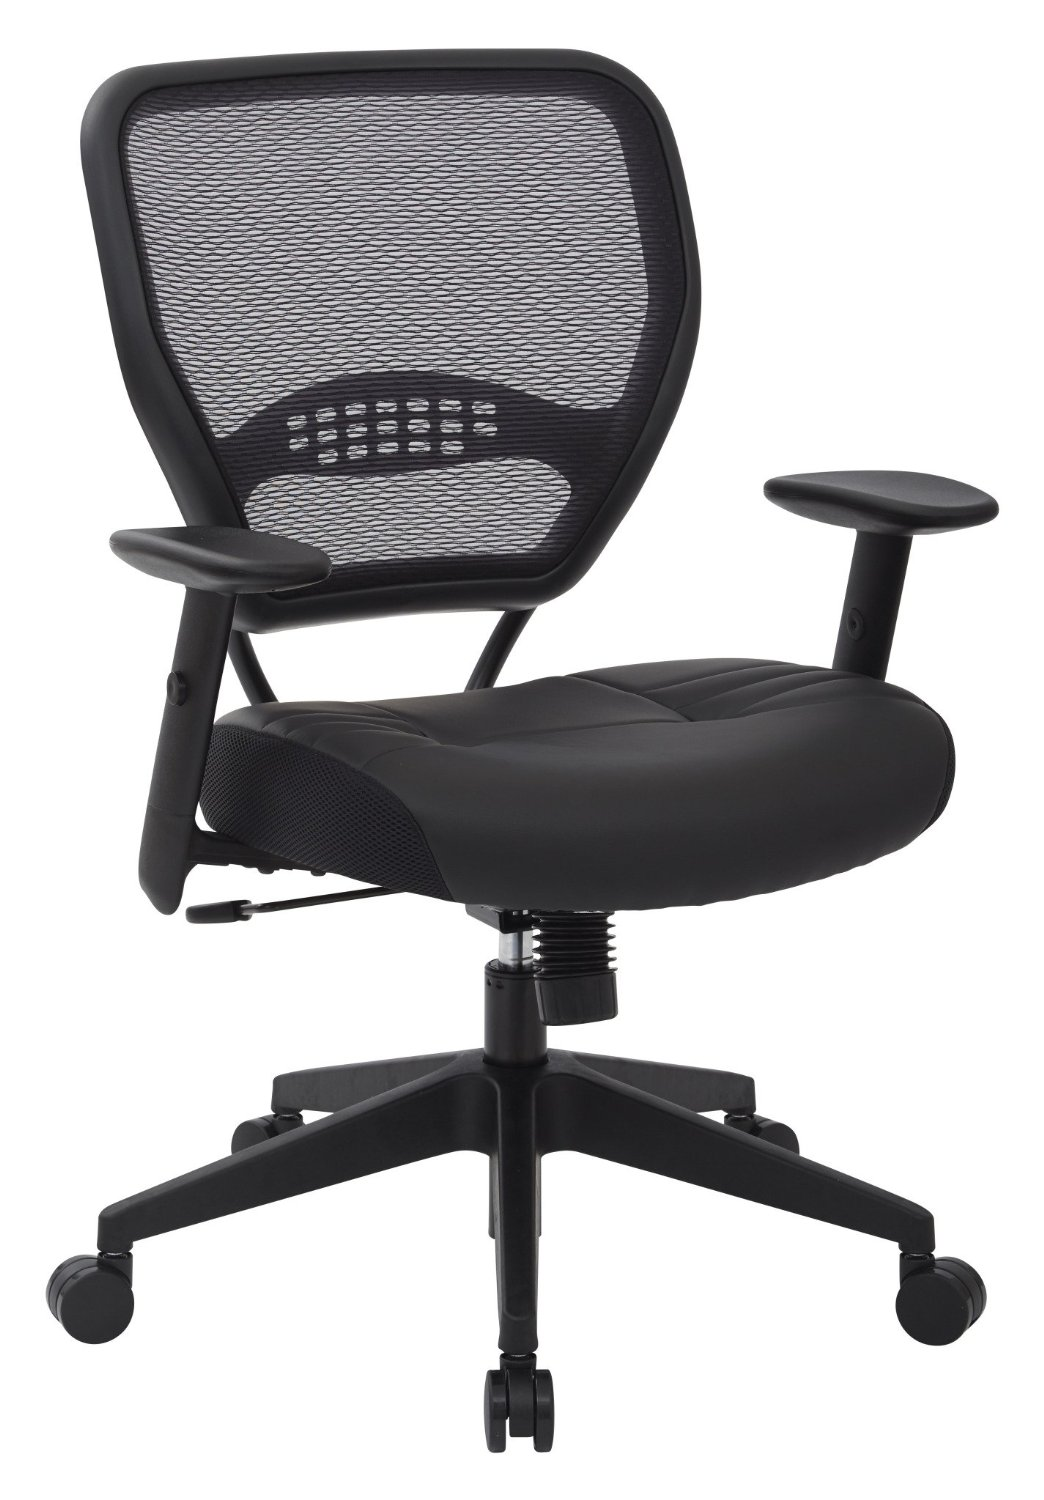 Most comfortable office chair - Comfortable chairs small spaces property ...